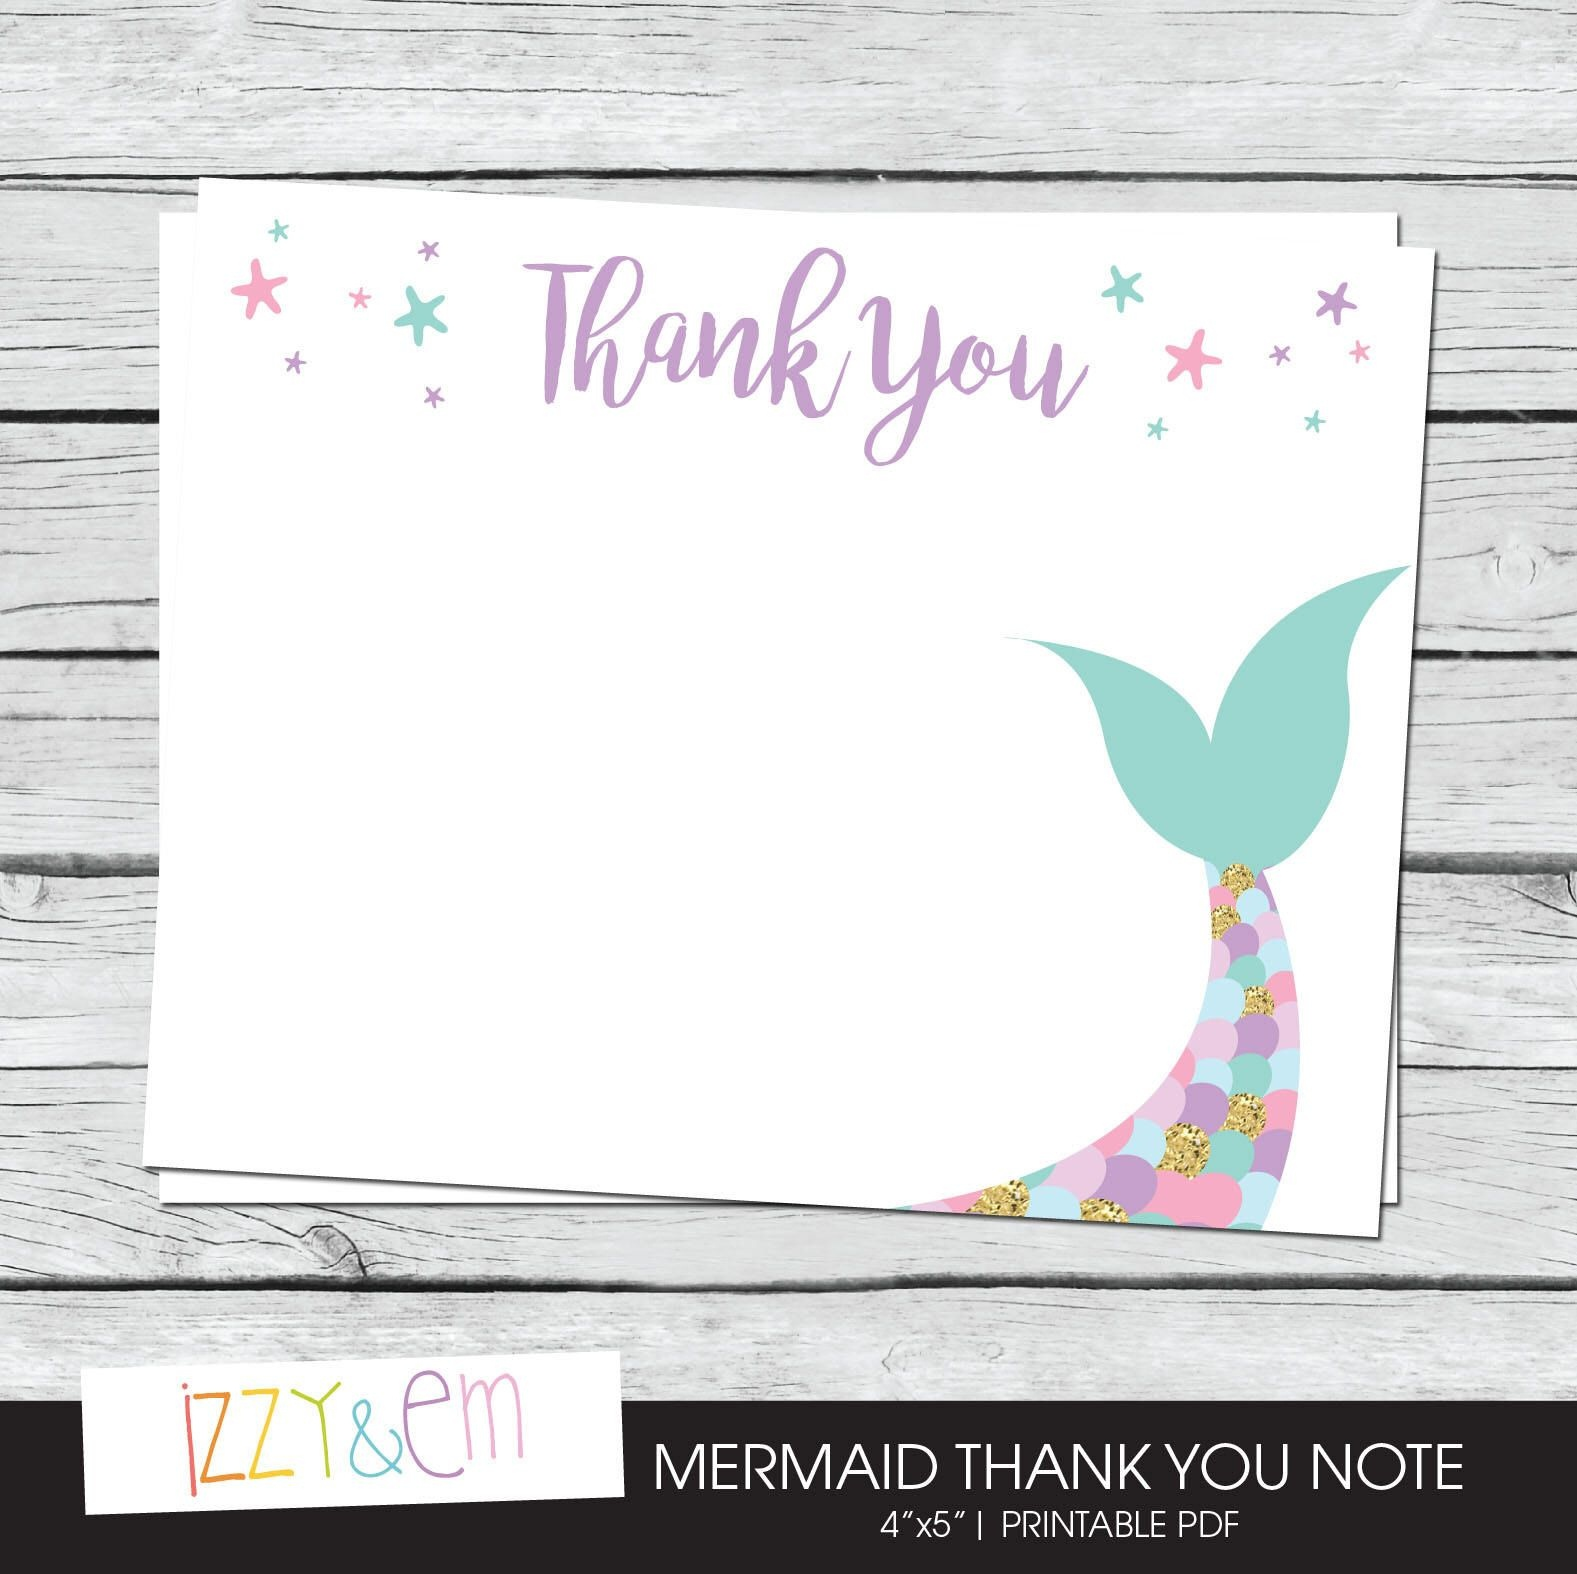 Mermaid Thank You Cards - Printable Thank You Notes - Birthday Thank - Free Printable Mermaid Thank You Cards